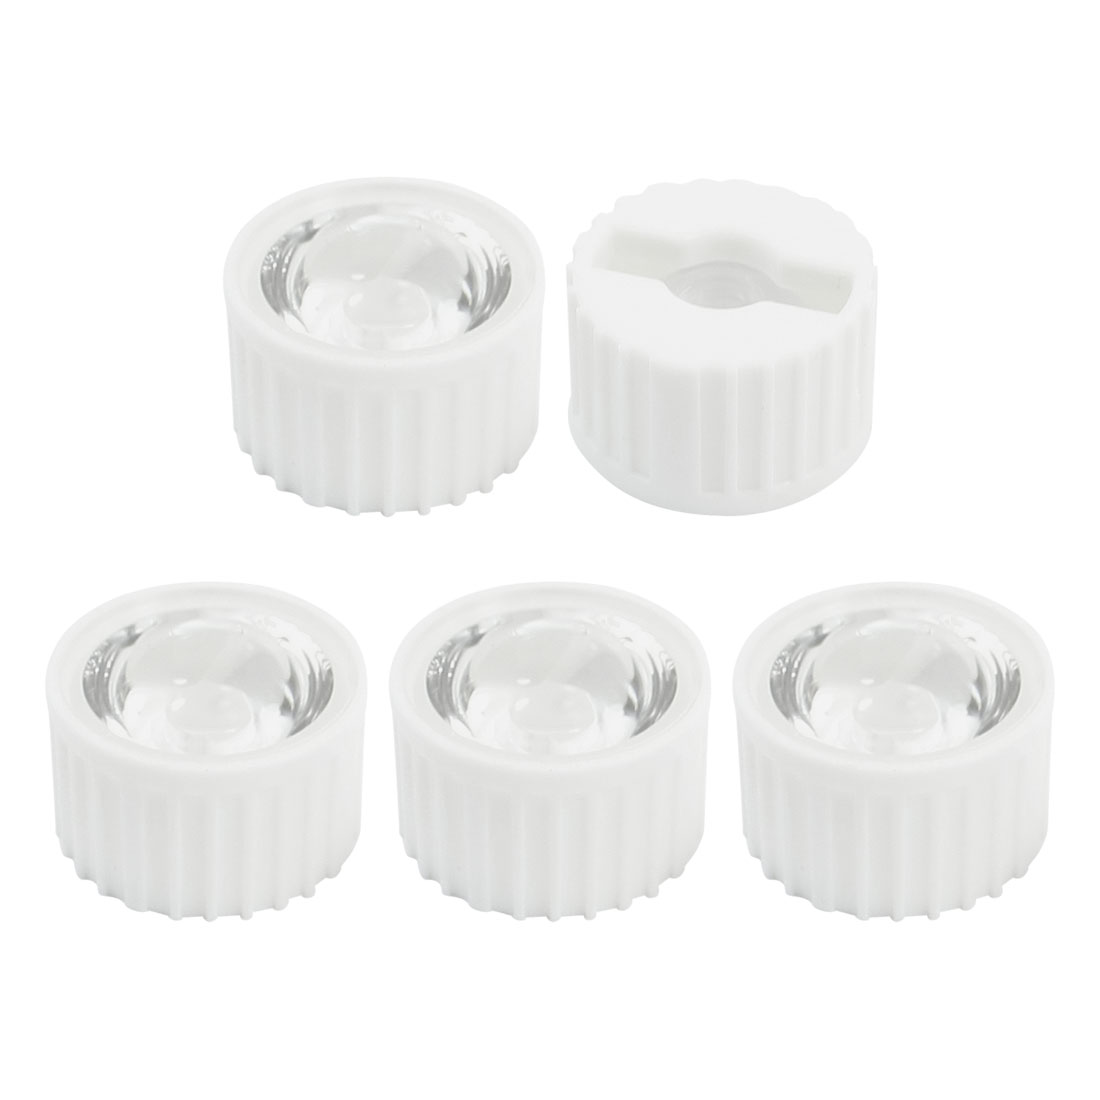 5Pcs 21x13mm High Power 1W 3W 5W Star LED Optical Lens 120 Degree